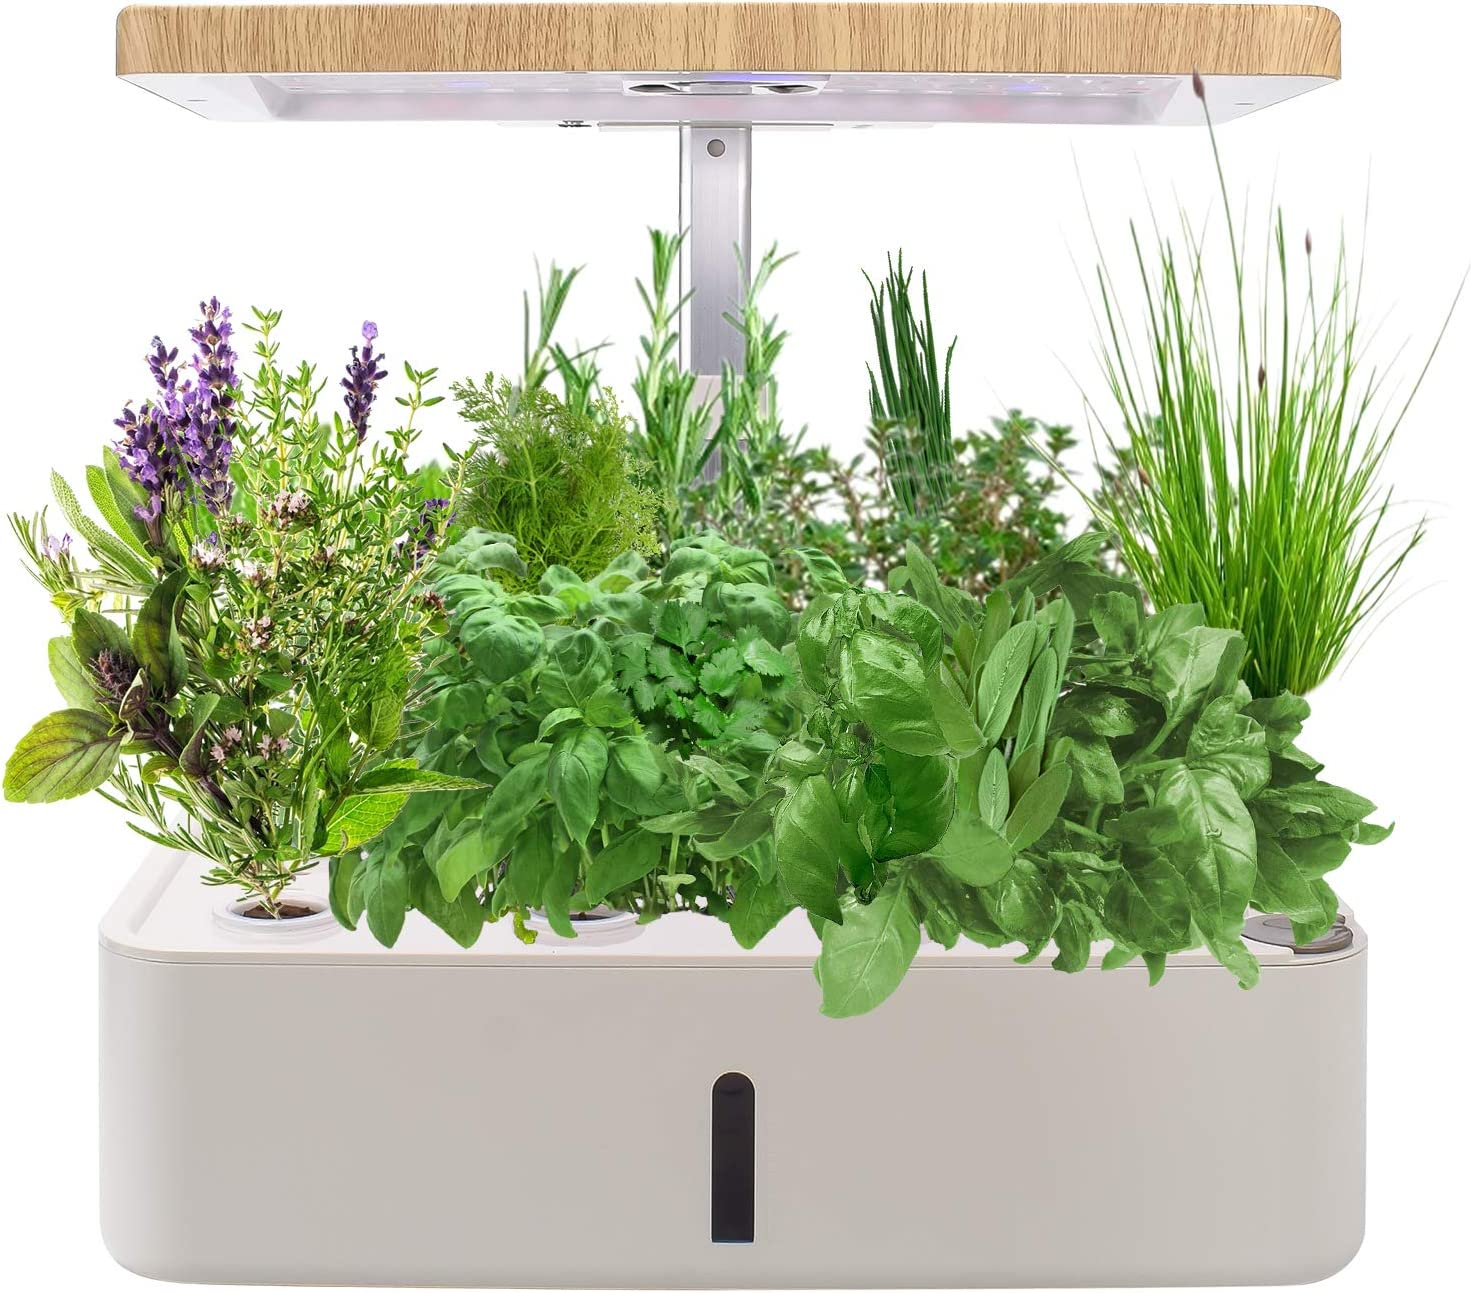 KORAM HydroponicsGrowingSystem Kit for Indoor Gardening, Smart LED Plant Grow Light Germination Kits for Home Kitchen Planting 12 Pots (Nutrient & Seeds Not Included)